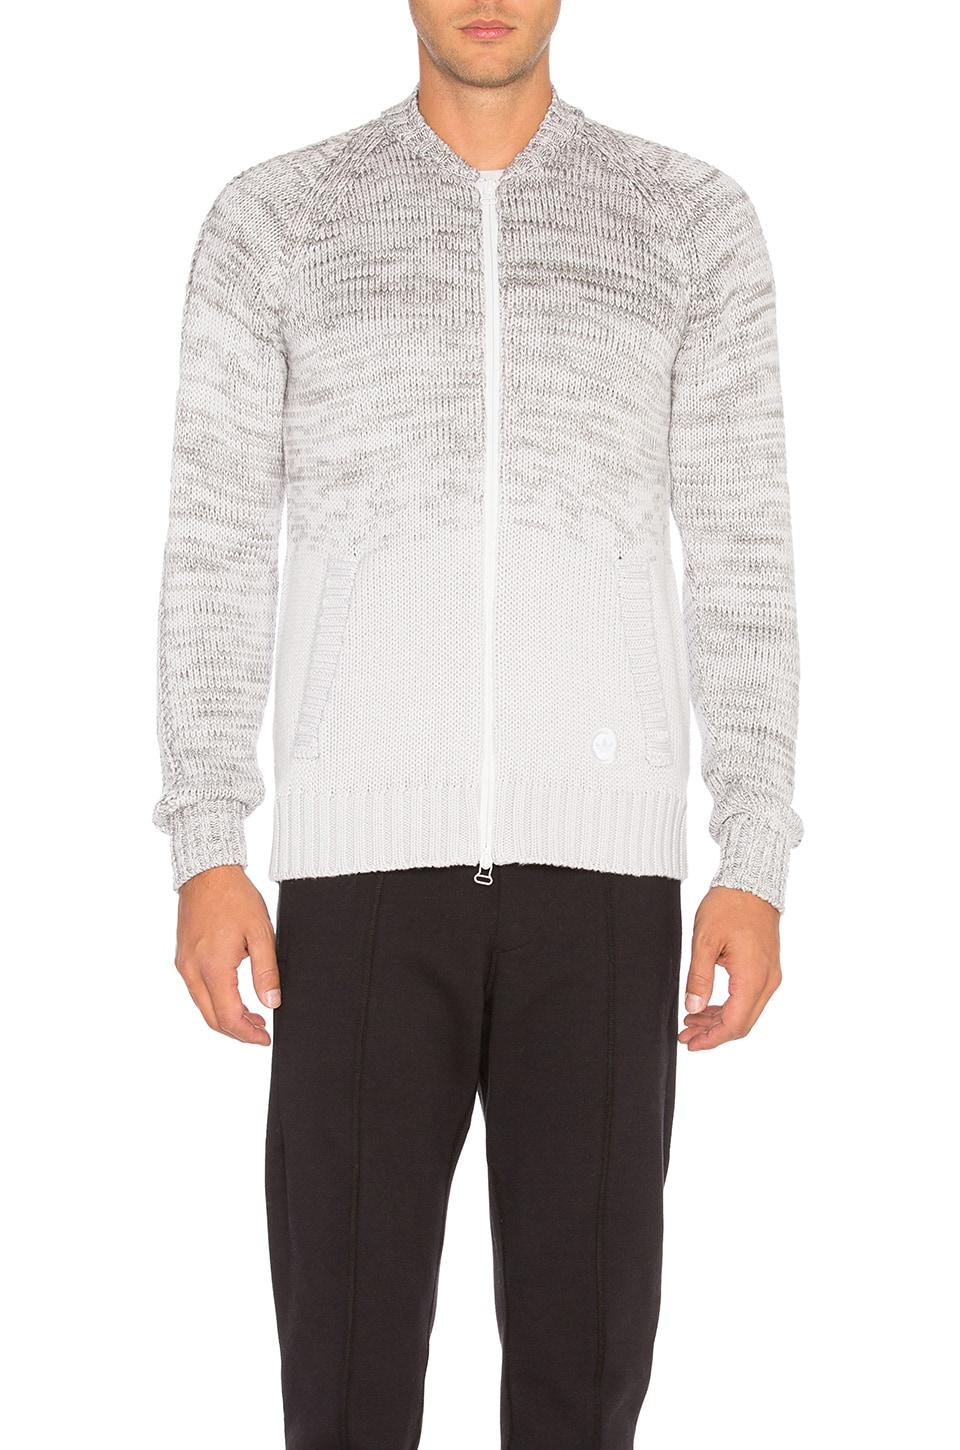 Ombre Tracktop by adidas by wings + horns